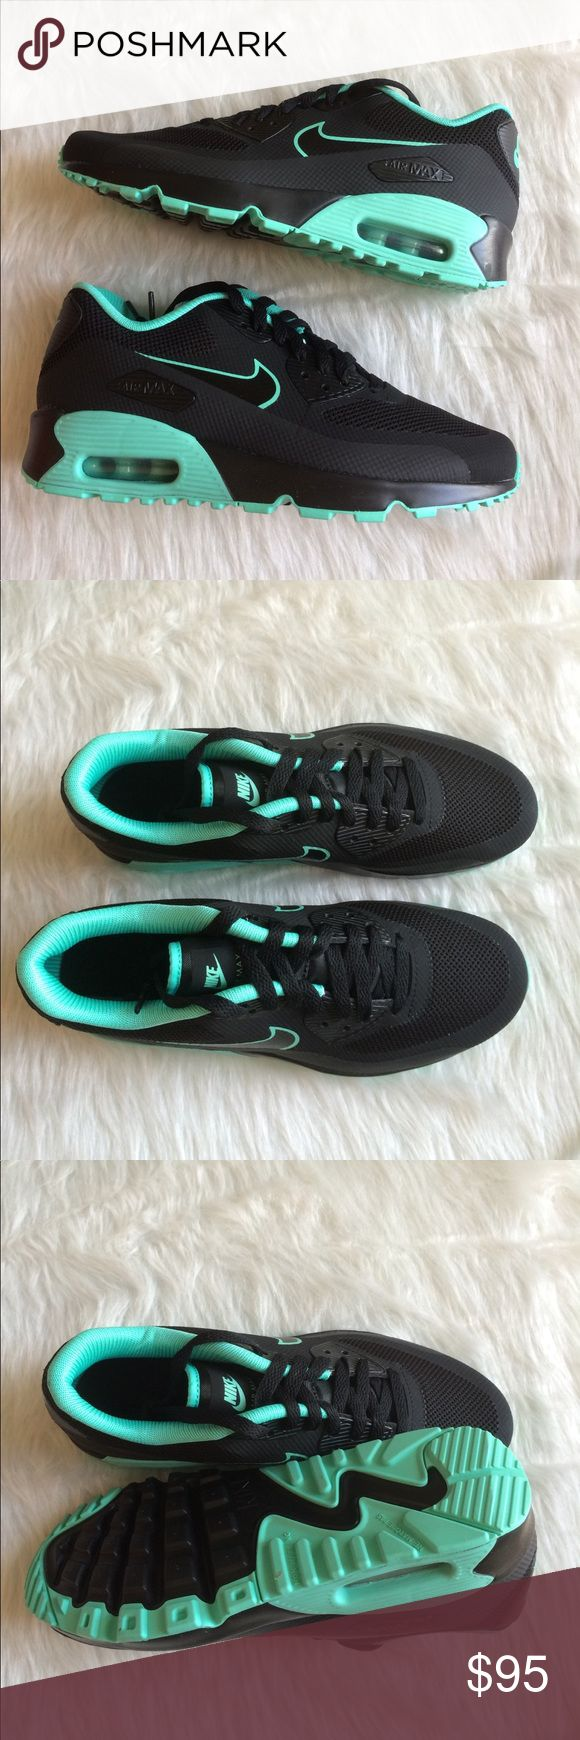 NIKE AIR MAX 90 BLACK TURQUOISE SHOES FB SE Brand new without box. Ships same day or very next. 100% authentic. Comment if you have any questions before purchasing. Shoes are a youth size 7.y. Which is a women's size 8.5. I have added a sizing chart for reference. Nike Shoes Sneakers